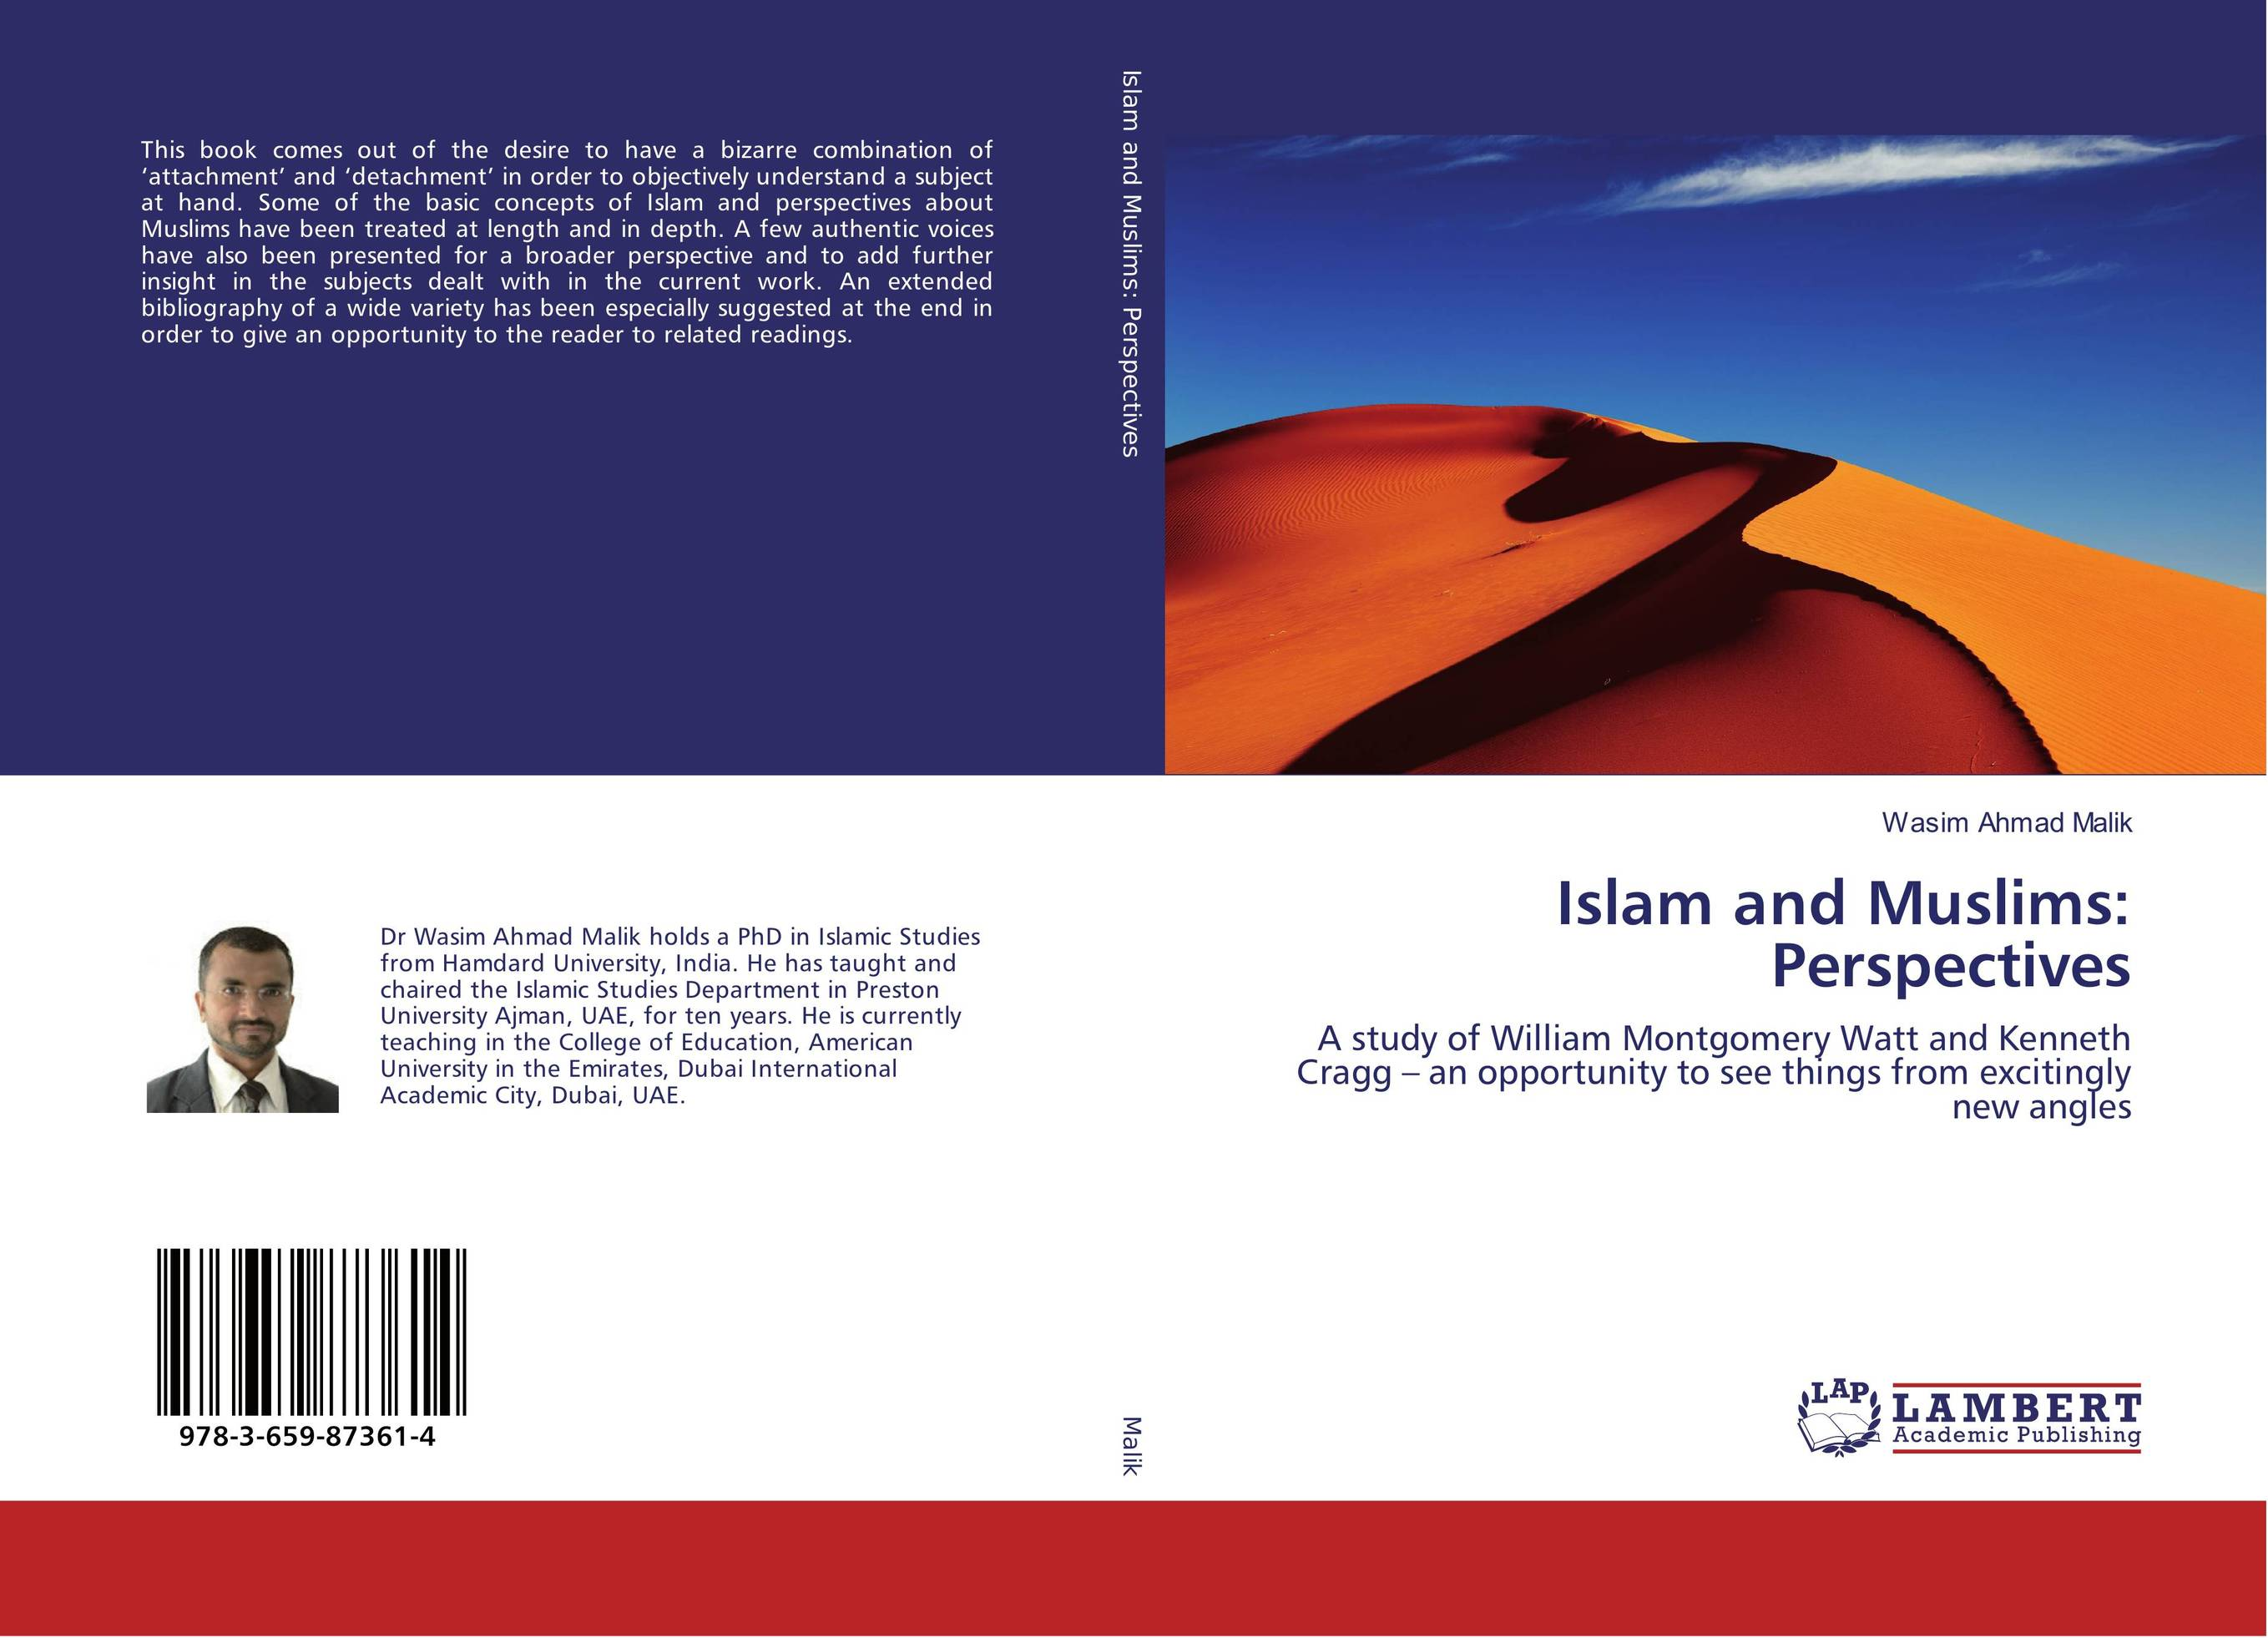 leadership from an islamic perspective Description summary this book is about leadership from an islamic and western perspective the objective of this book is to examine leadership from the western perspective through the eyes of some scholars of leadership.